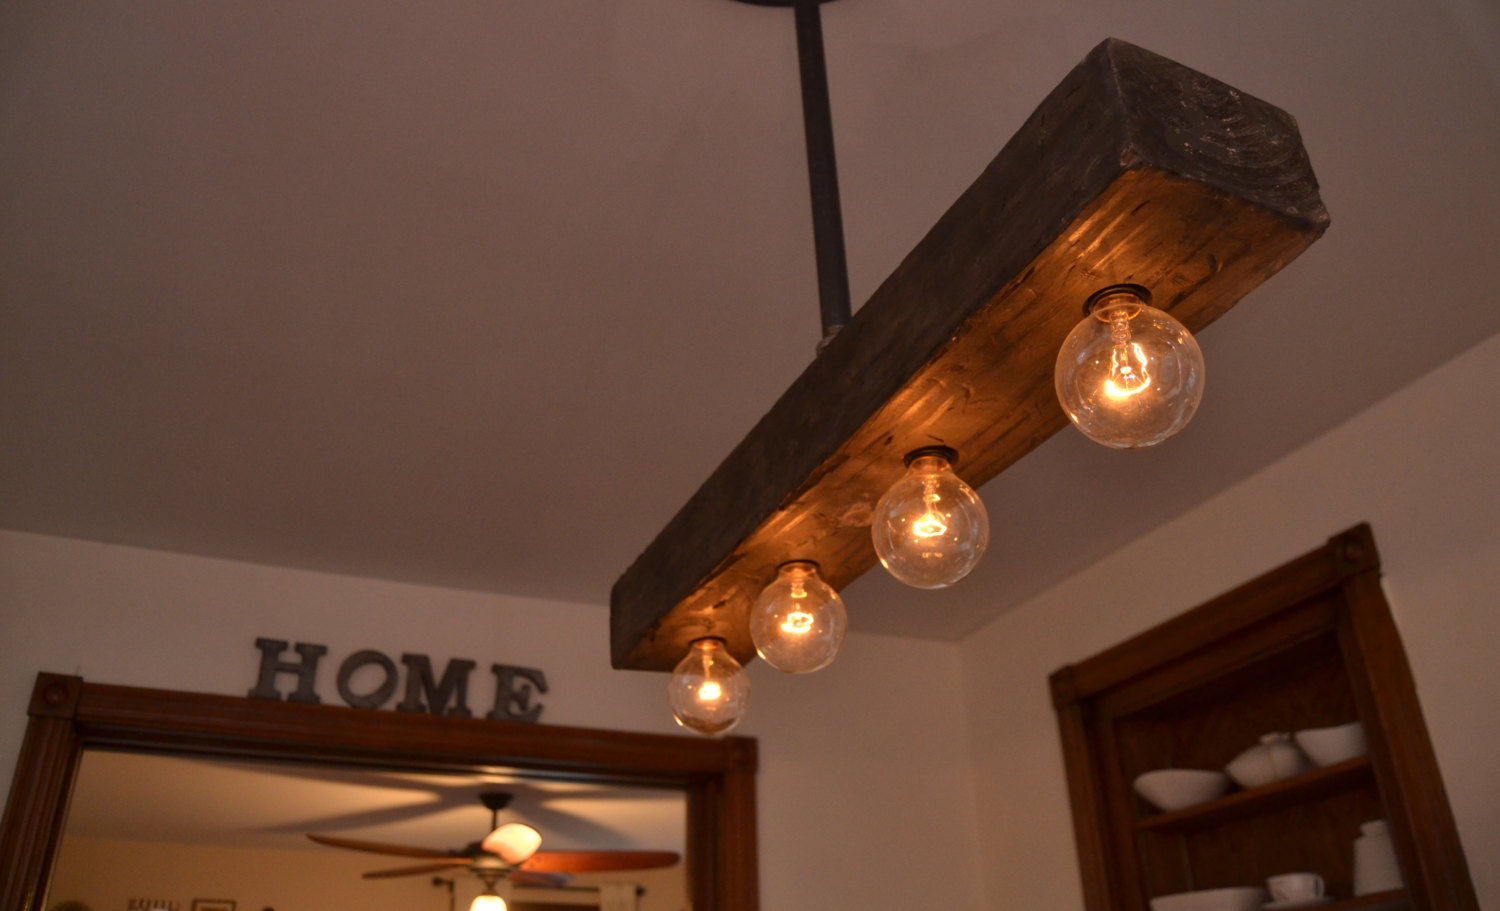 18 Slick Handmade Reclaimed Wood Diy Projects That You Ll